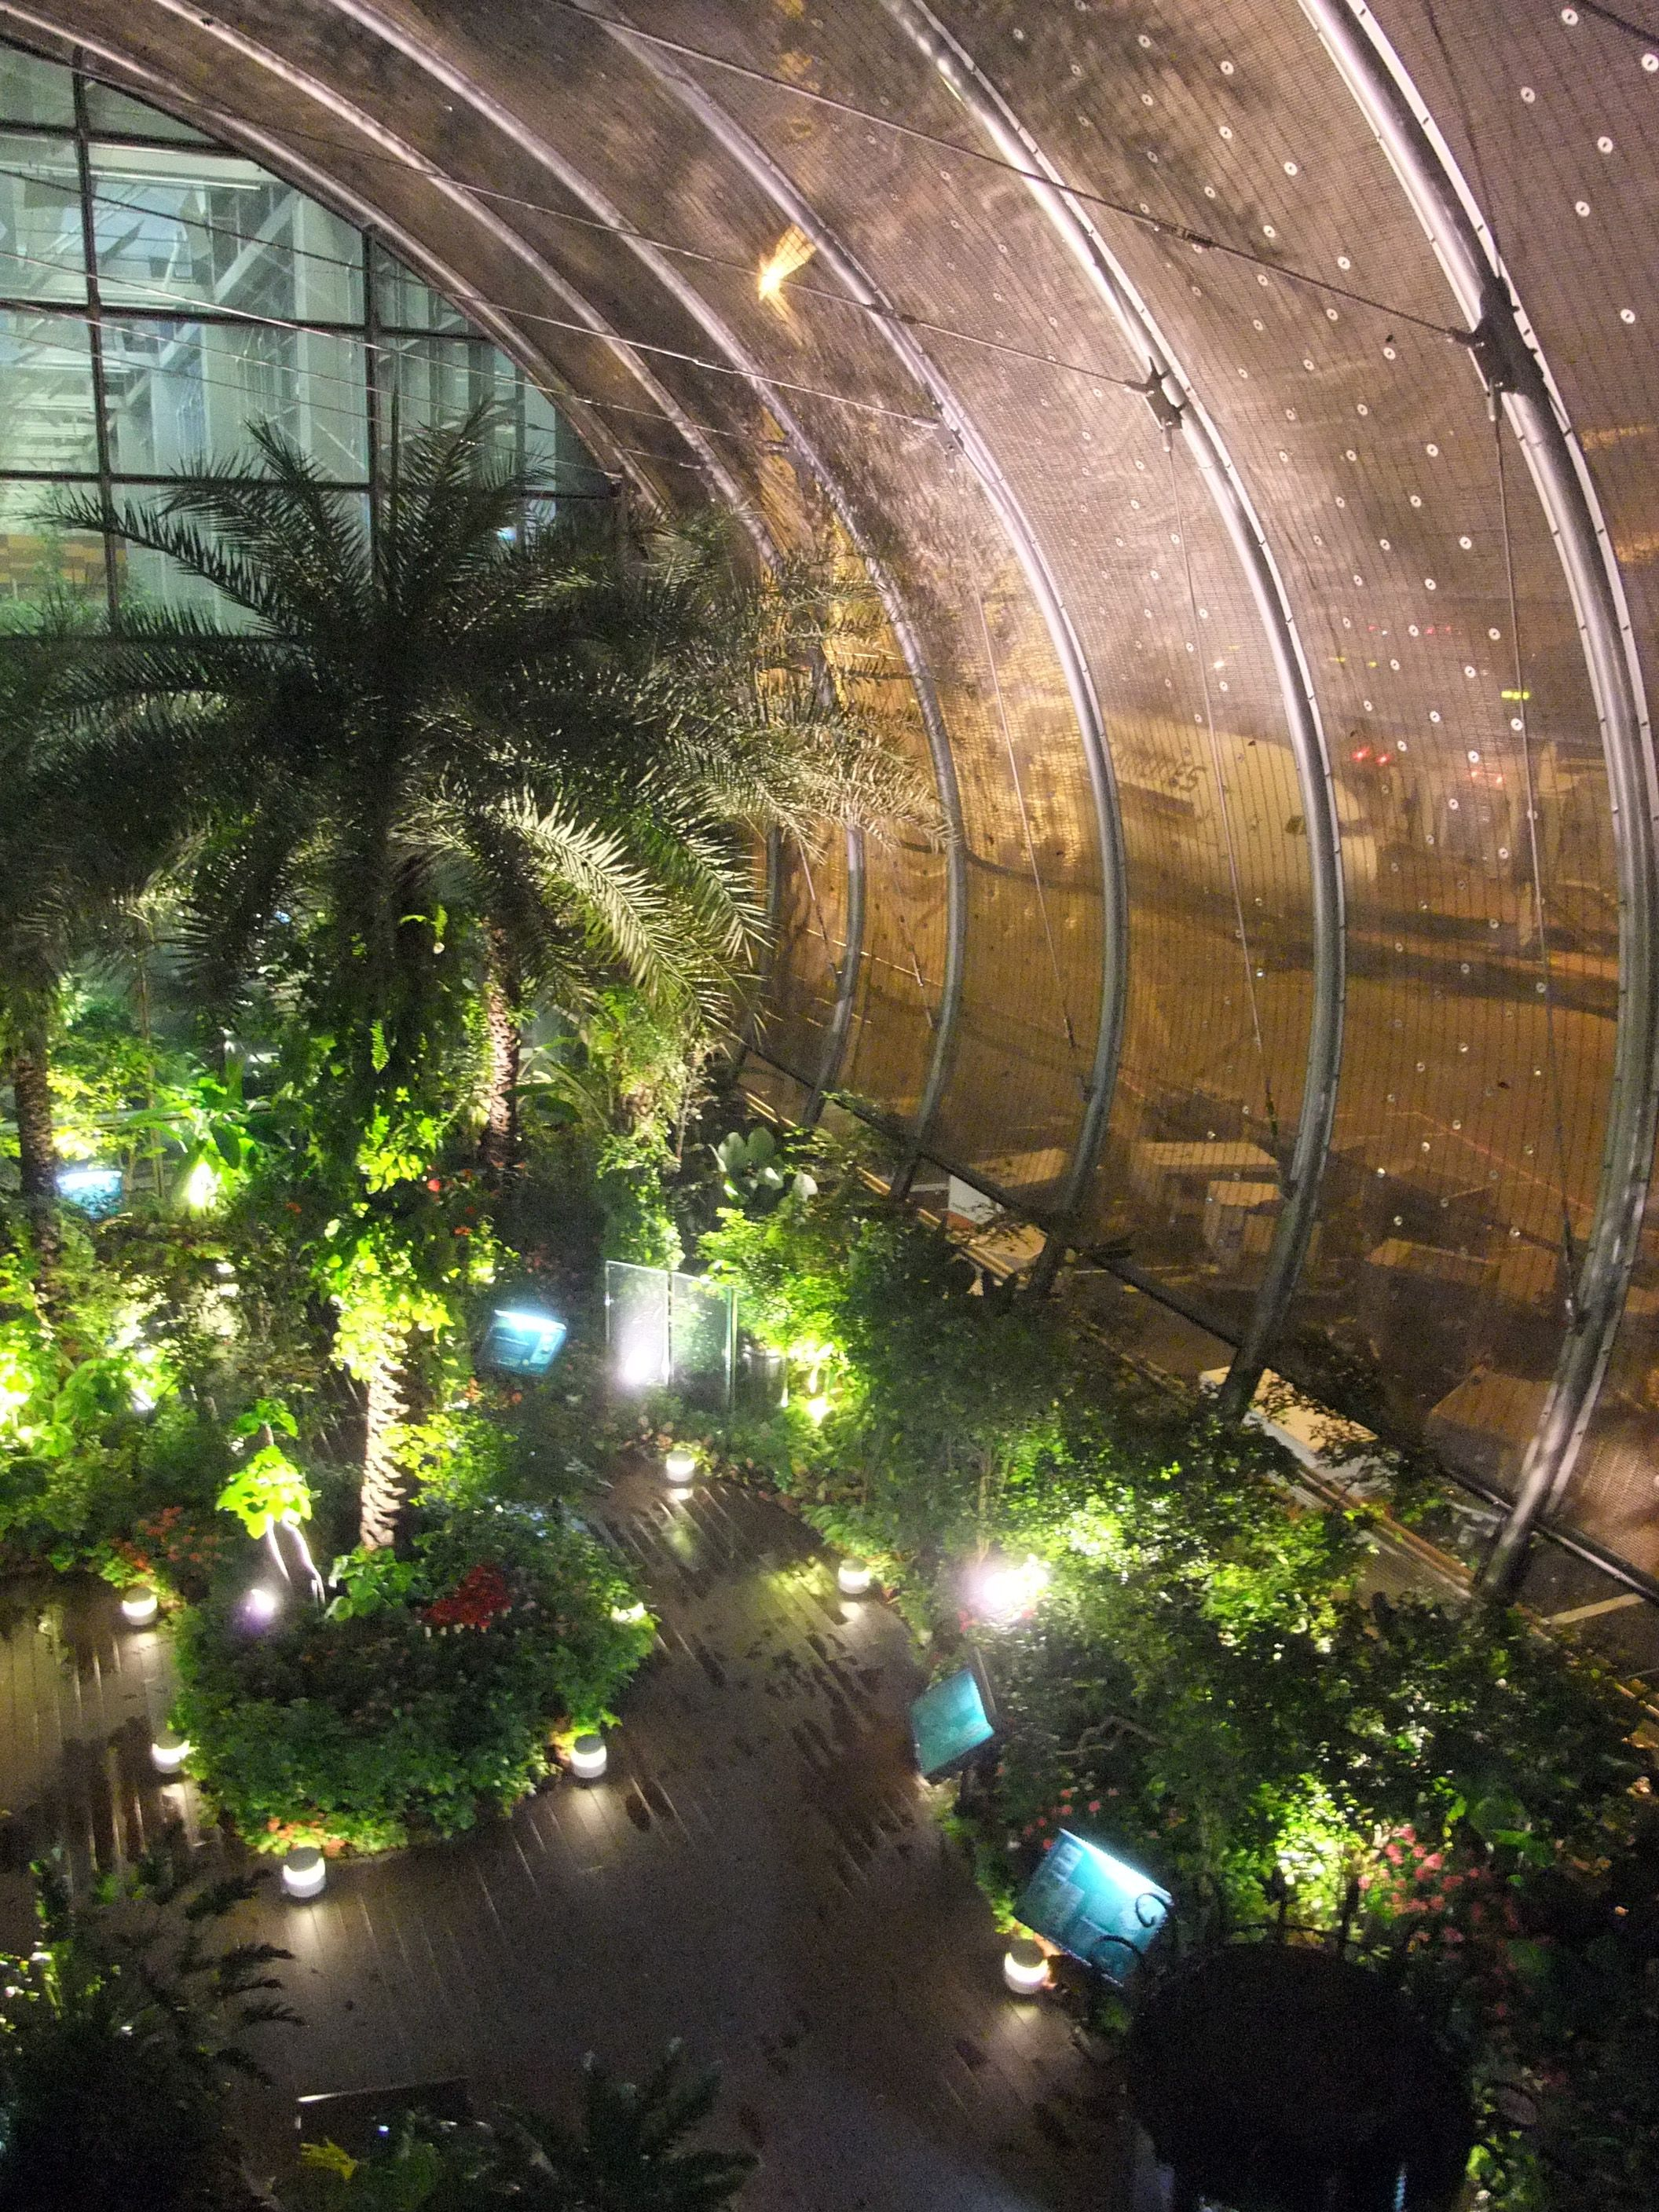 Changi#airport#singapore Terminal 3 butterfly garden#comeflywithme ...